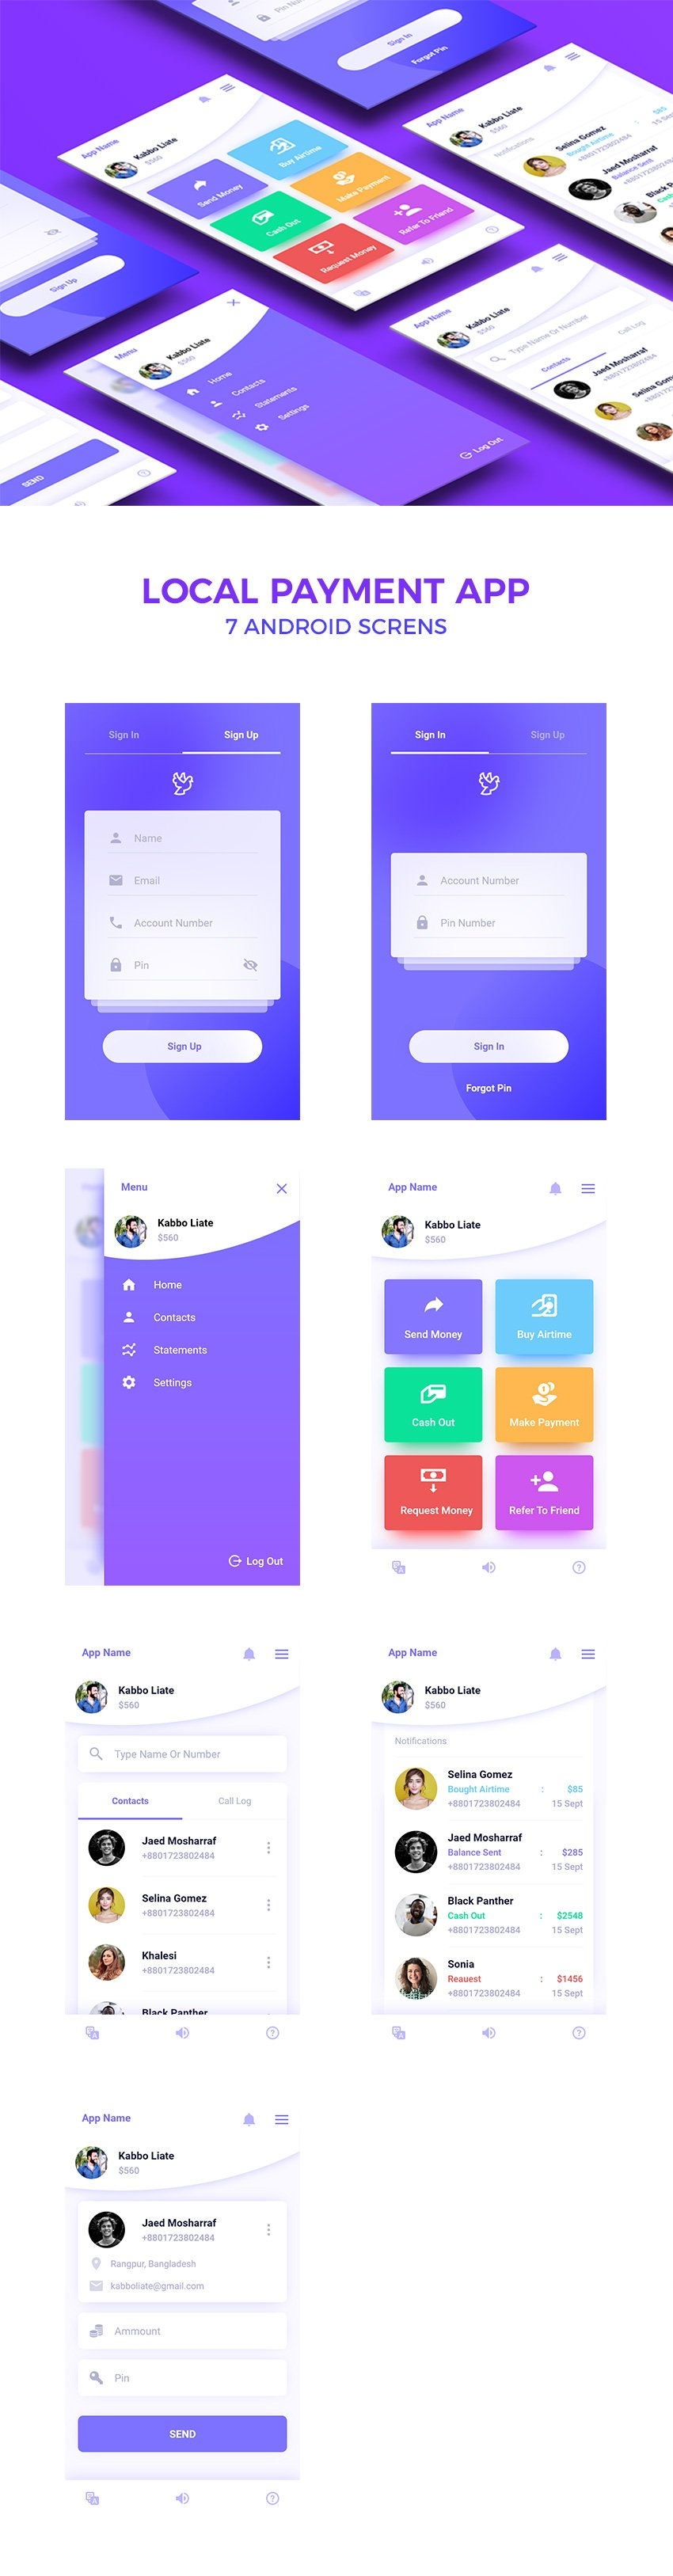 Local Payment App Design Concept for Adobe Xd - 7 Screens